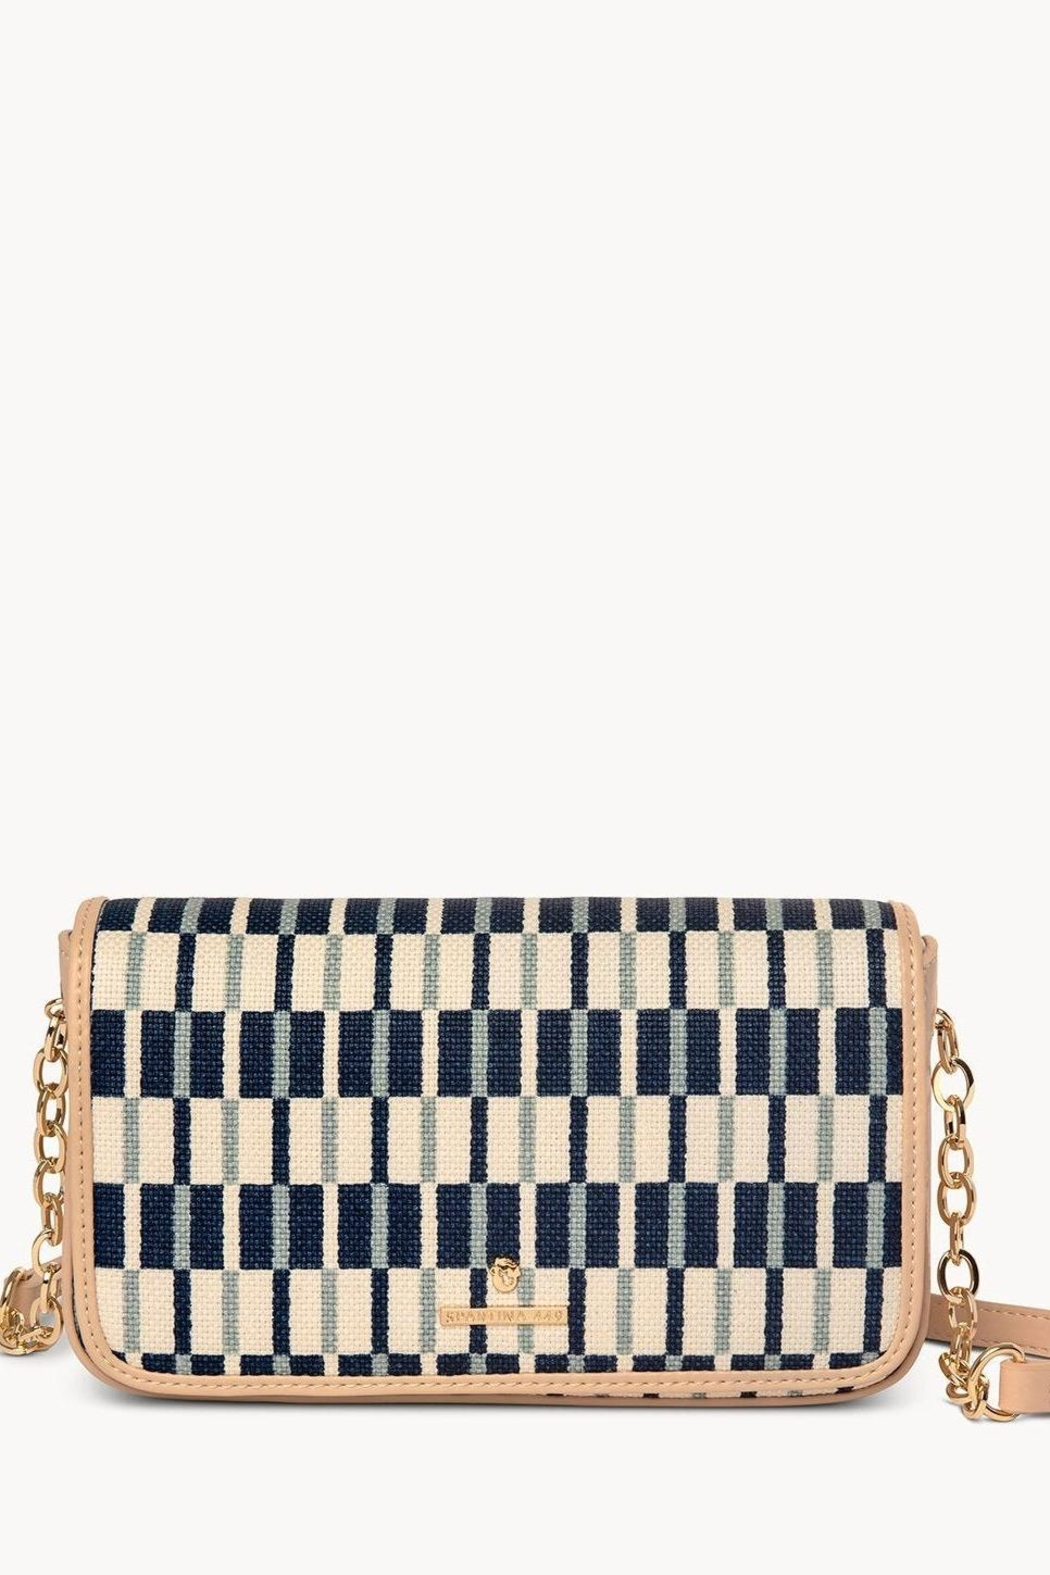 Spartina 449 Daise Captain Crossbody - Main Image